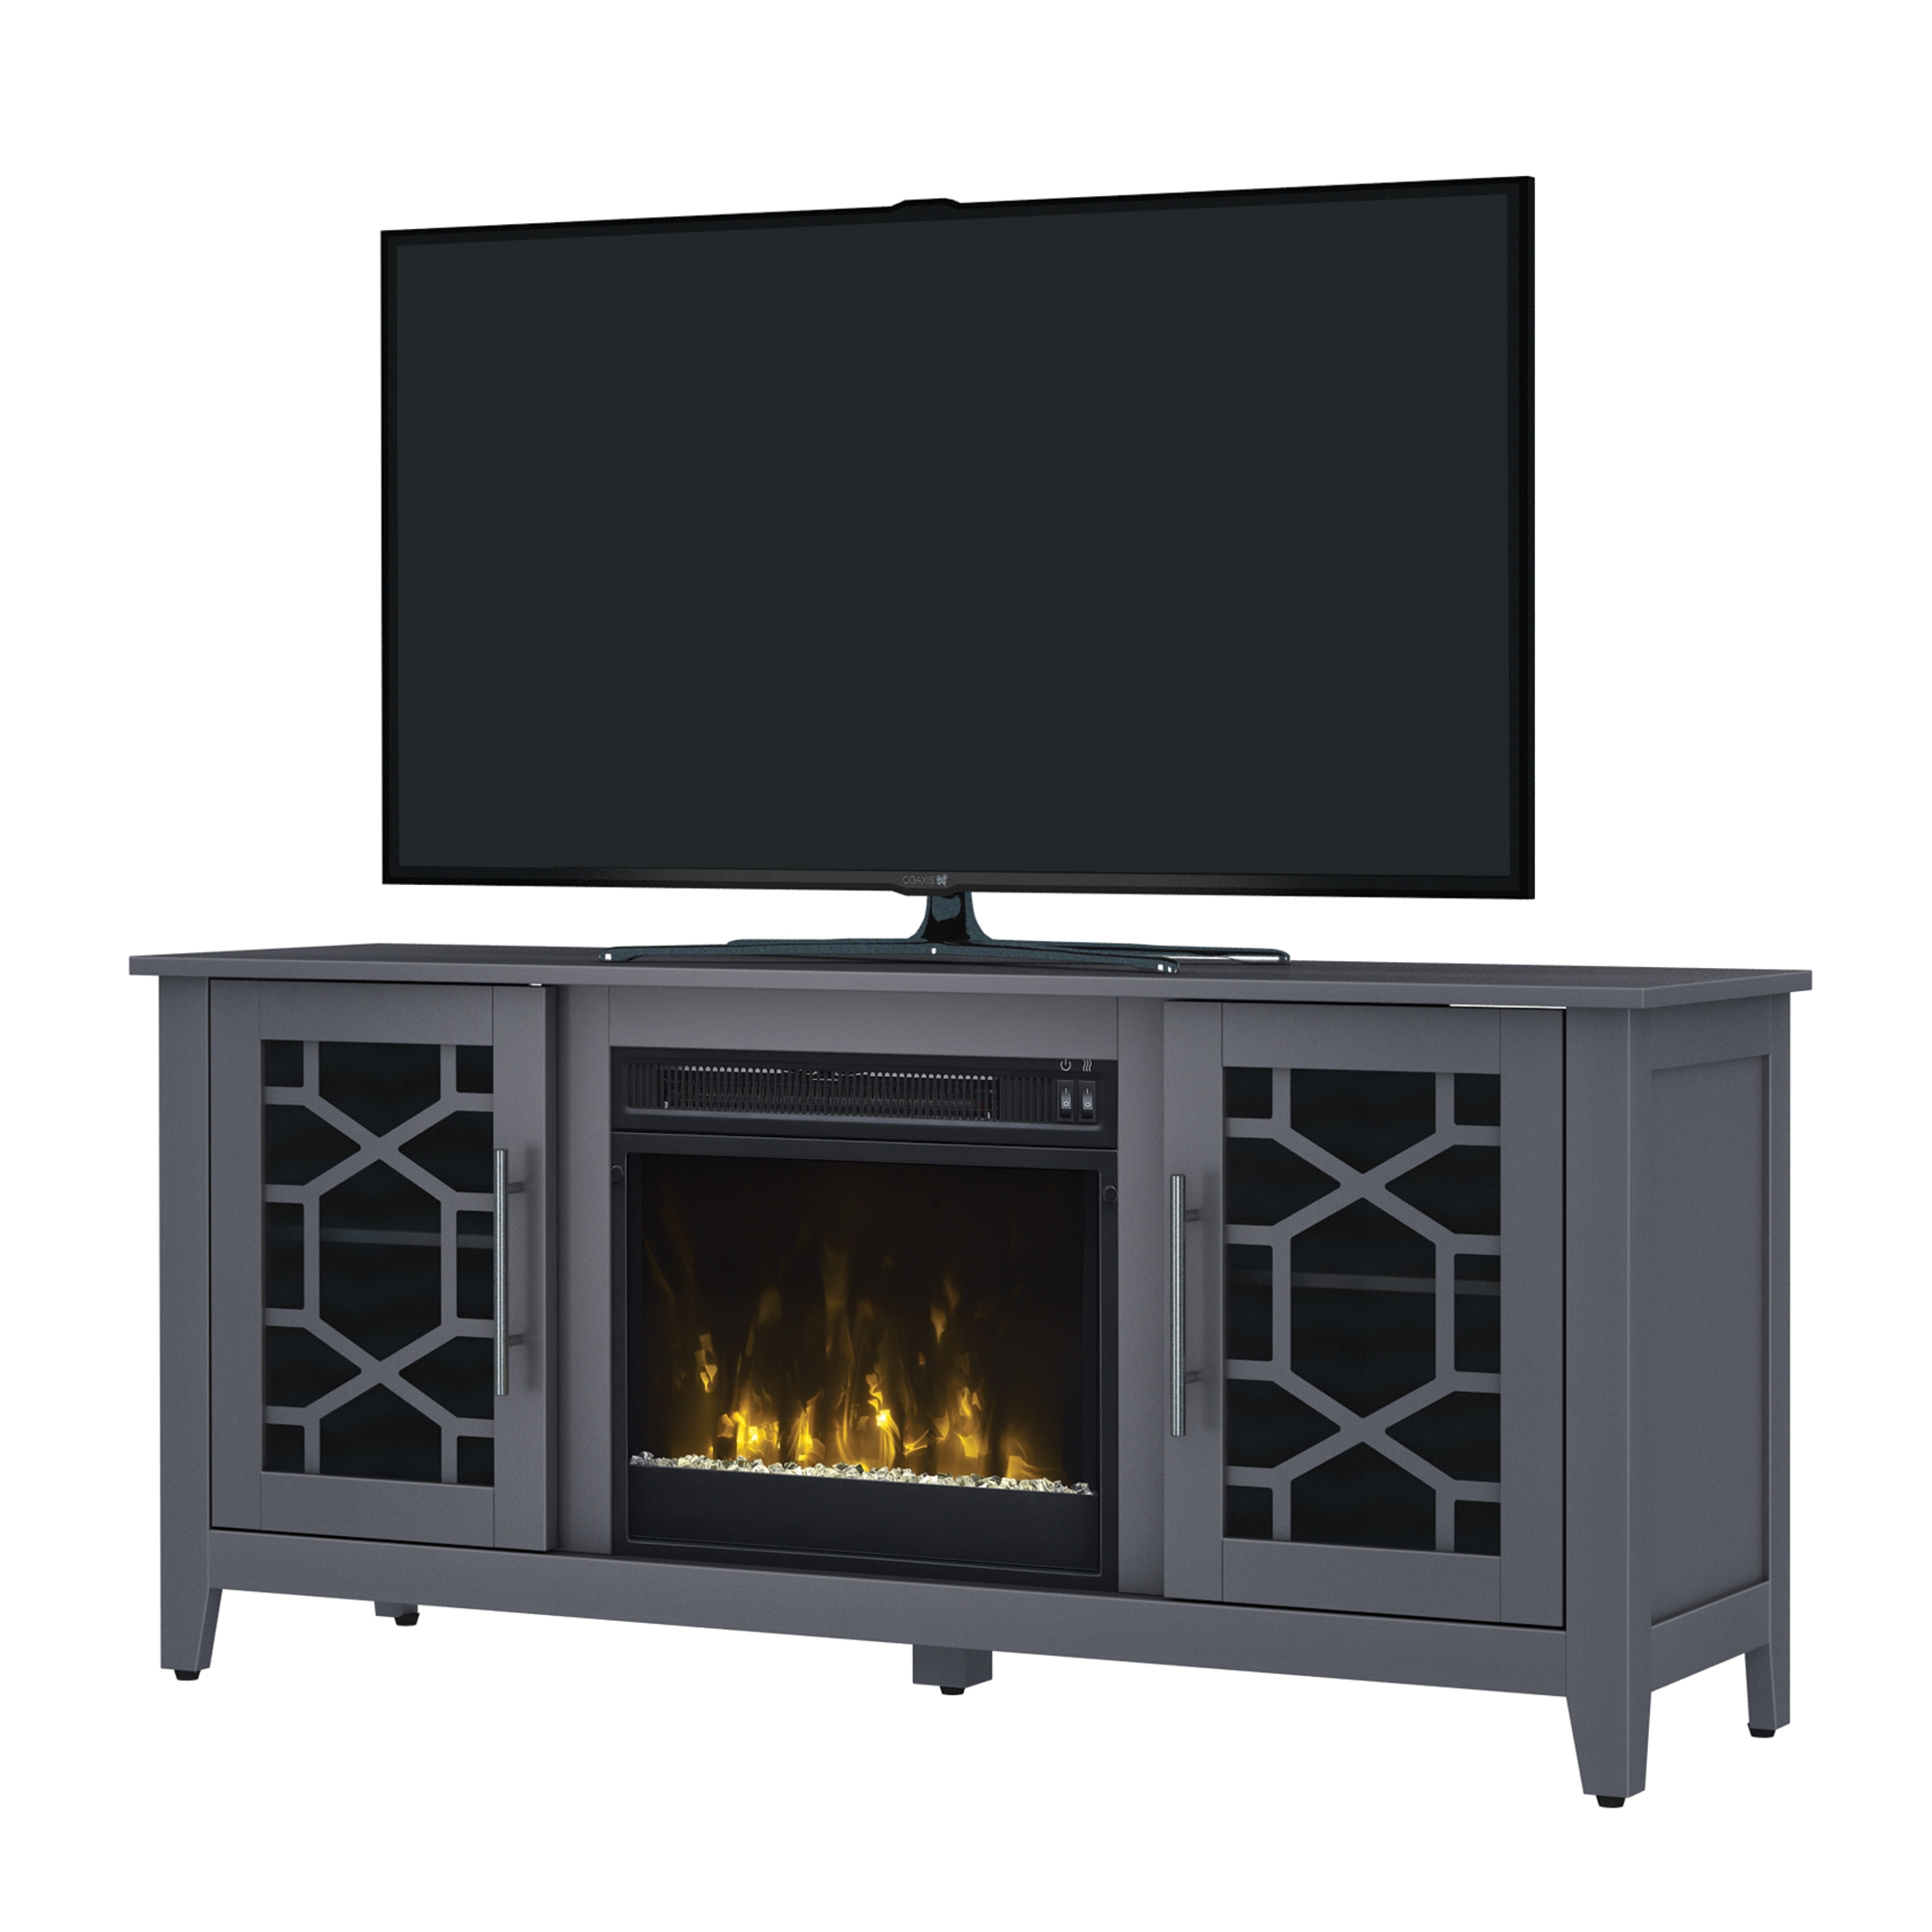 "Elmhurst Cool Gray TV Stand for TVs up to 60"" with Electric Fireplace"